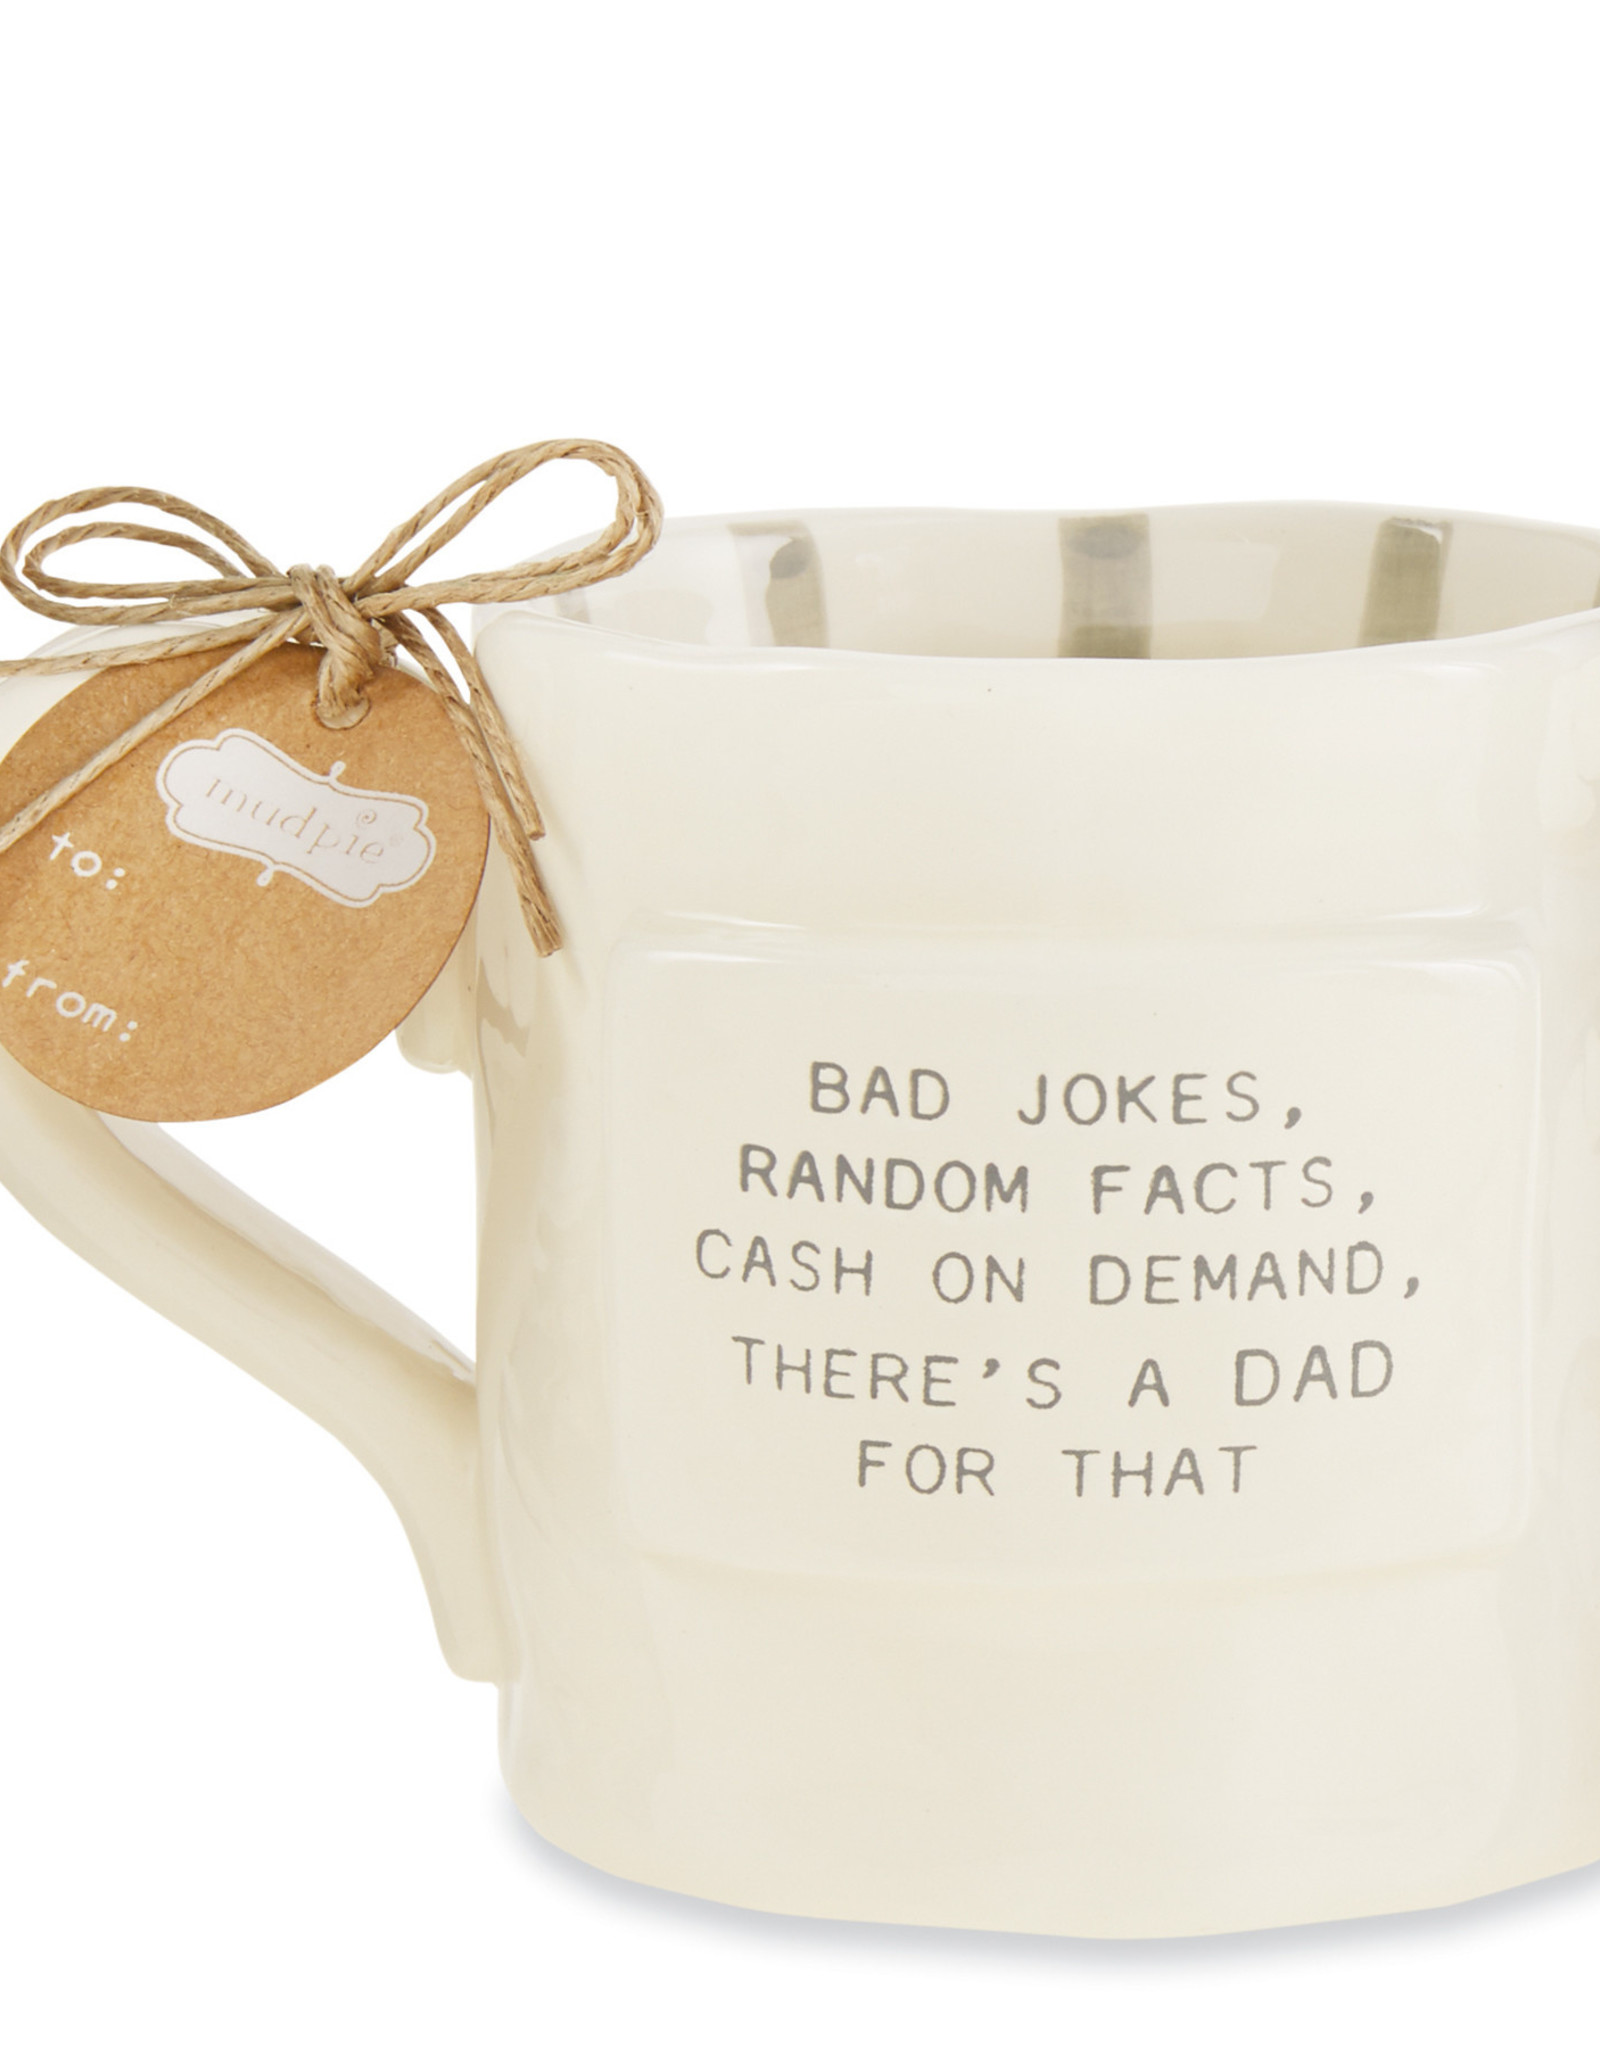 There's a Dad for that Coffee Mug